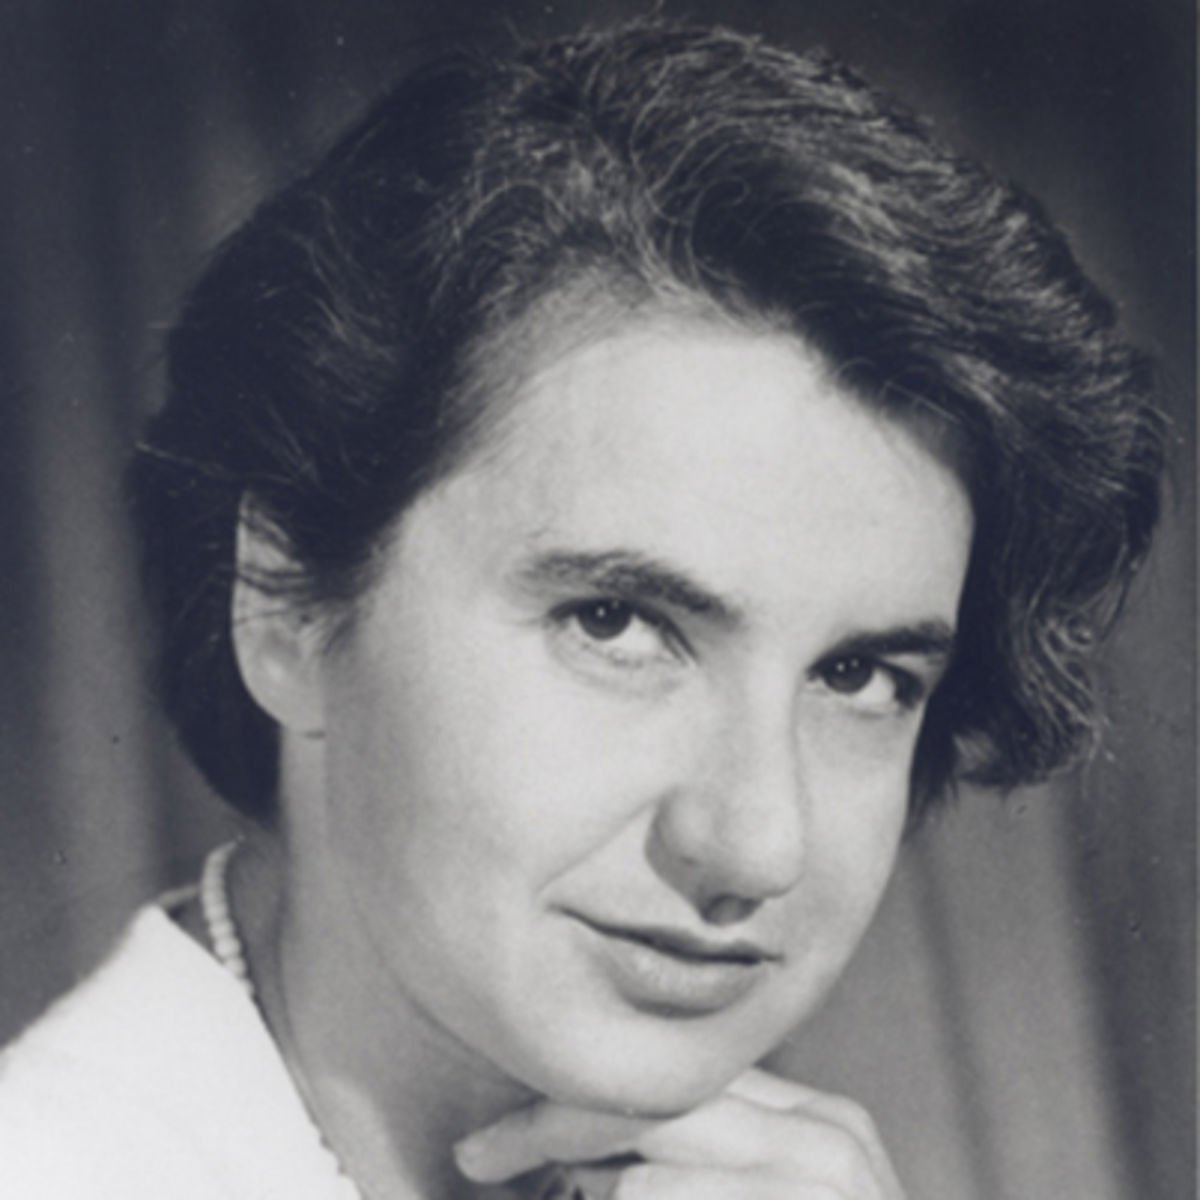 A chemist &amp; X-ray crystallographer, Franklin led research on molecular structures of viruses  http:// ow.ly/4jWH302v6pY  &nbsp;   #womeninstem <br>http://pic.twitter.com/ZaJF7Wi5EA